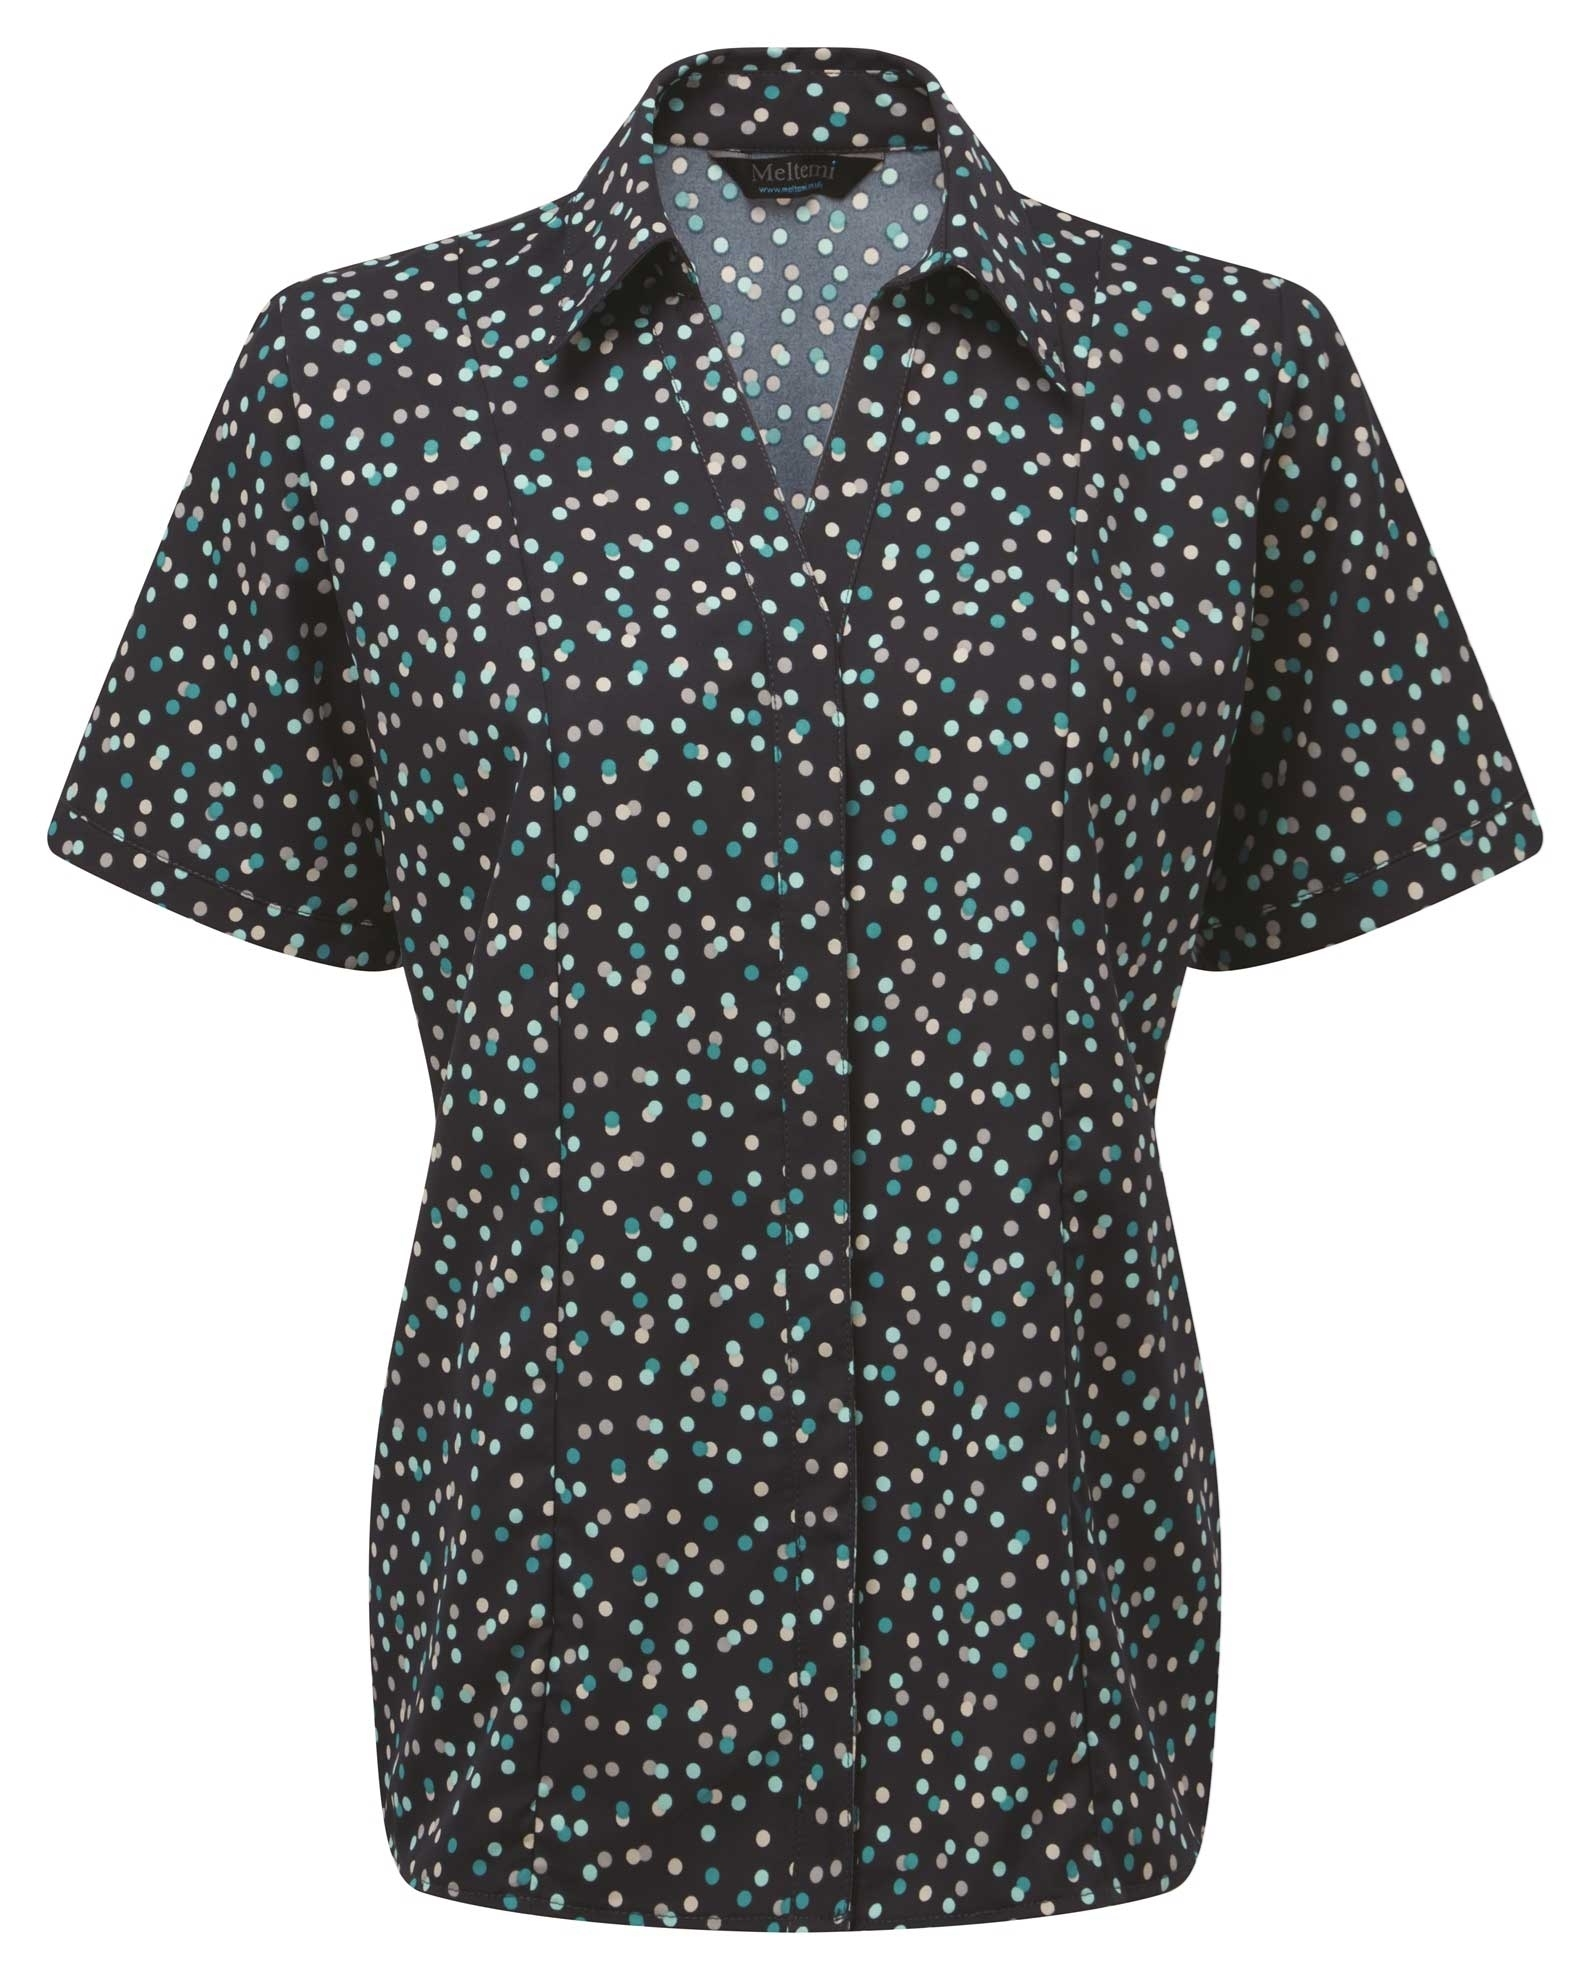 Picture of Semi-Fitted CoolWeave Blouse - Navy/Teal/Grey Darcey Print